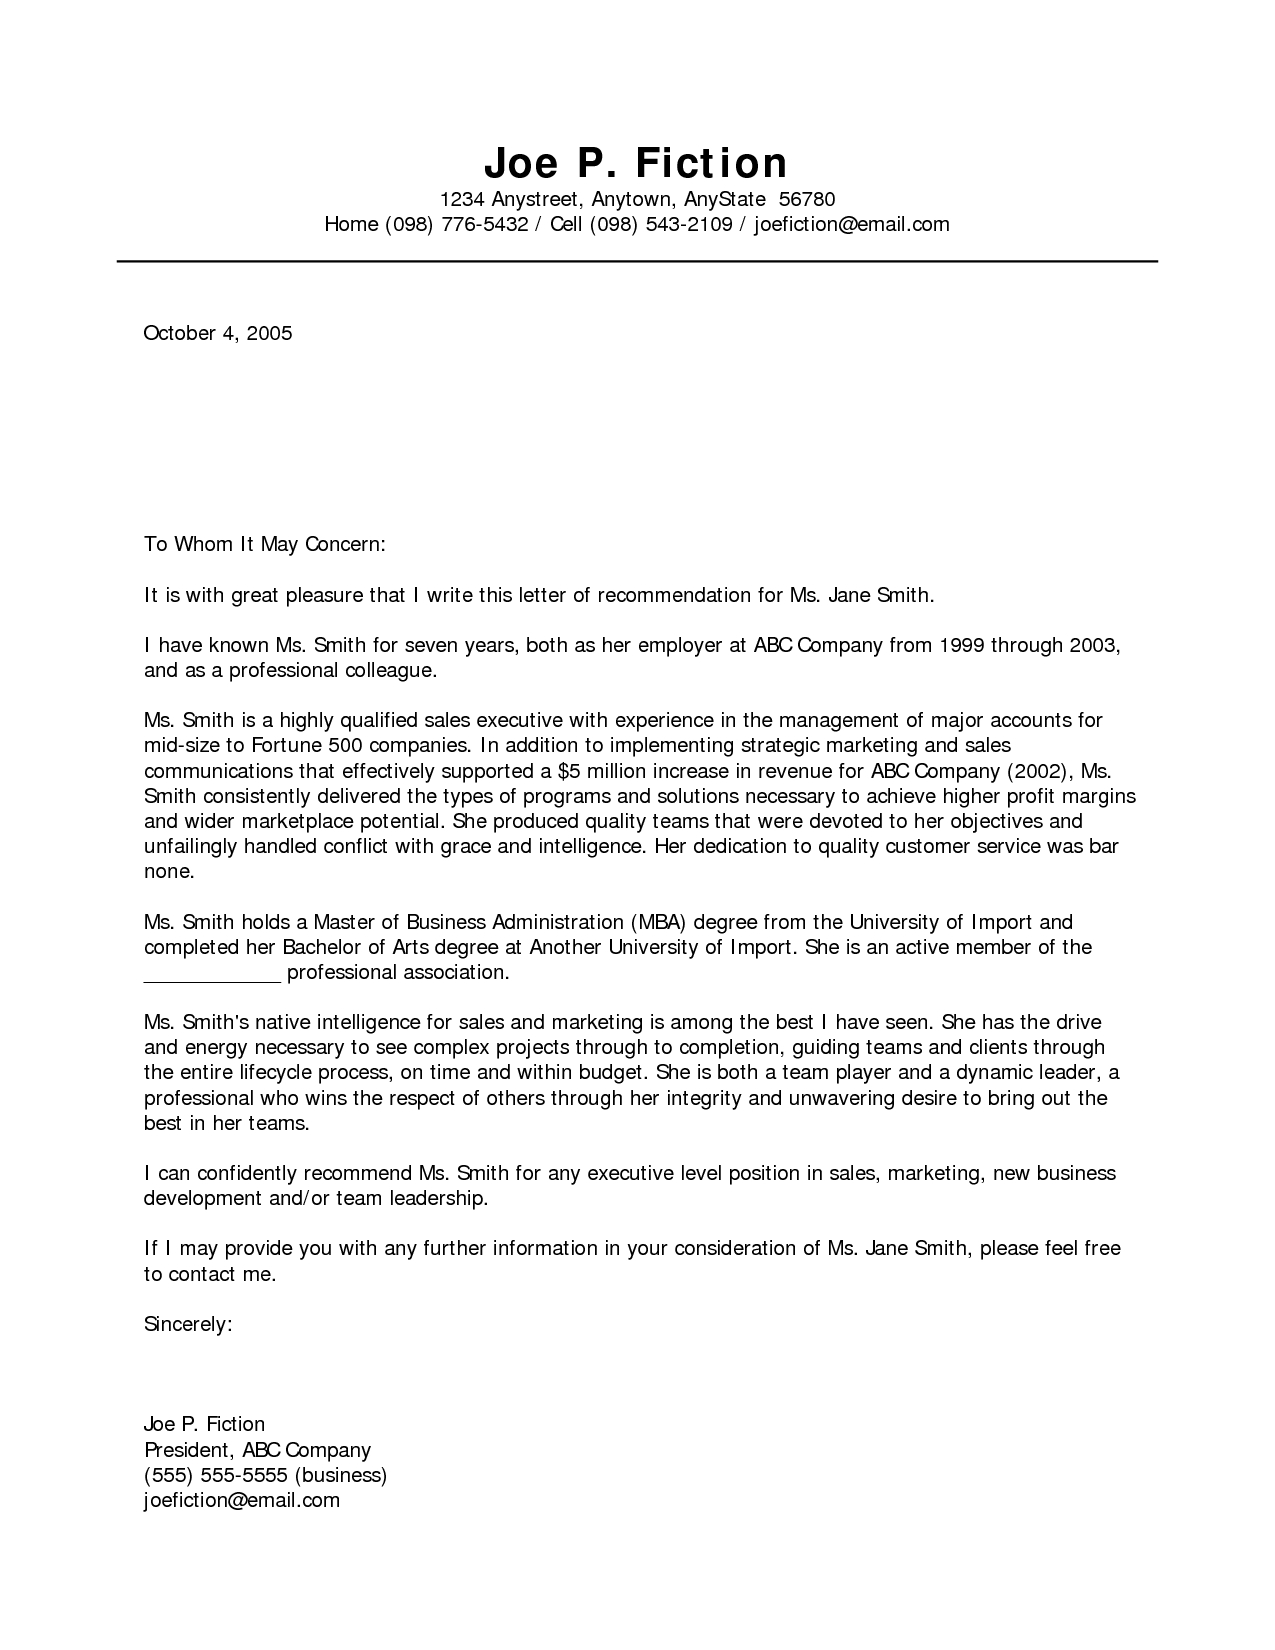 professional letter of recommendation template example-business re mendation letter template 18-f